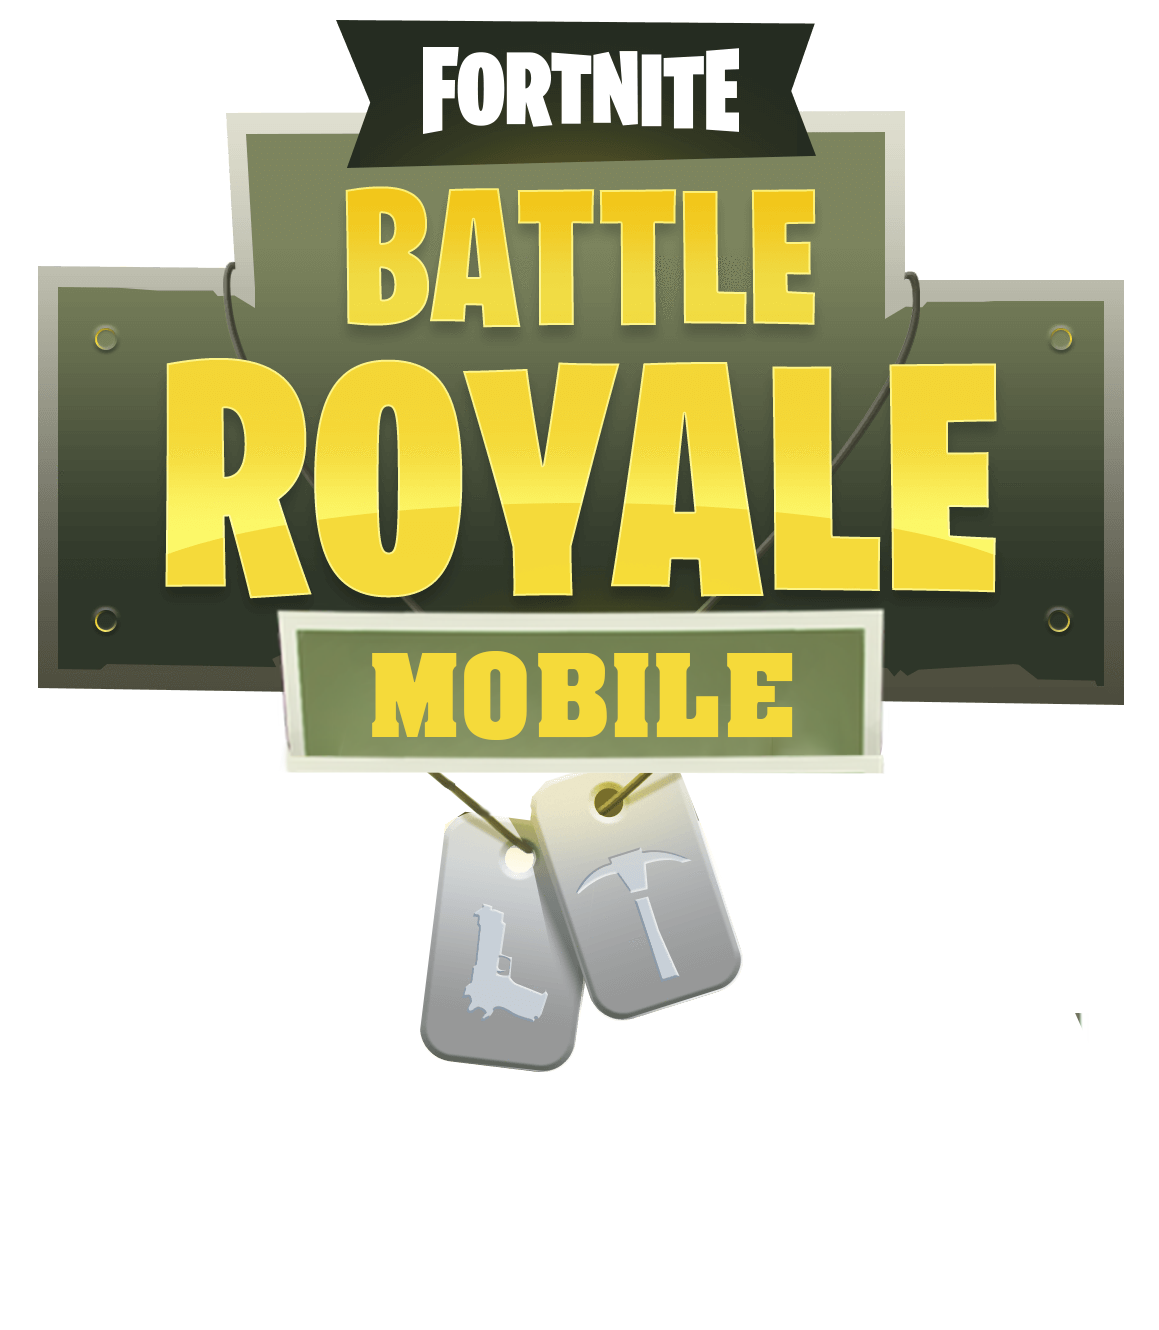 Download Fortnite Mobile Logo PNG Image for Free.